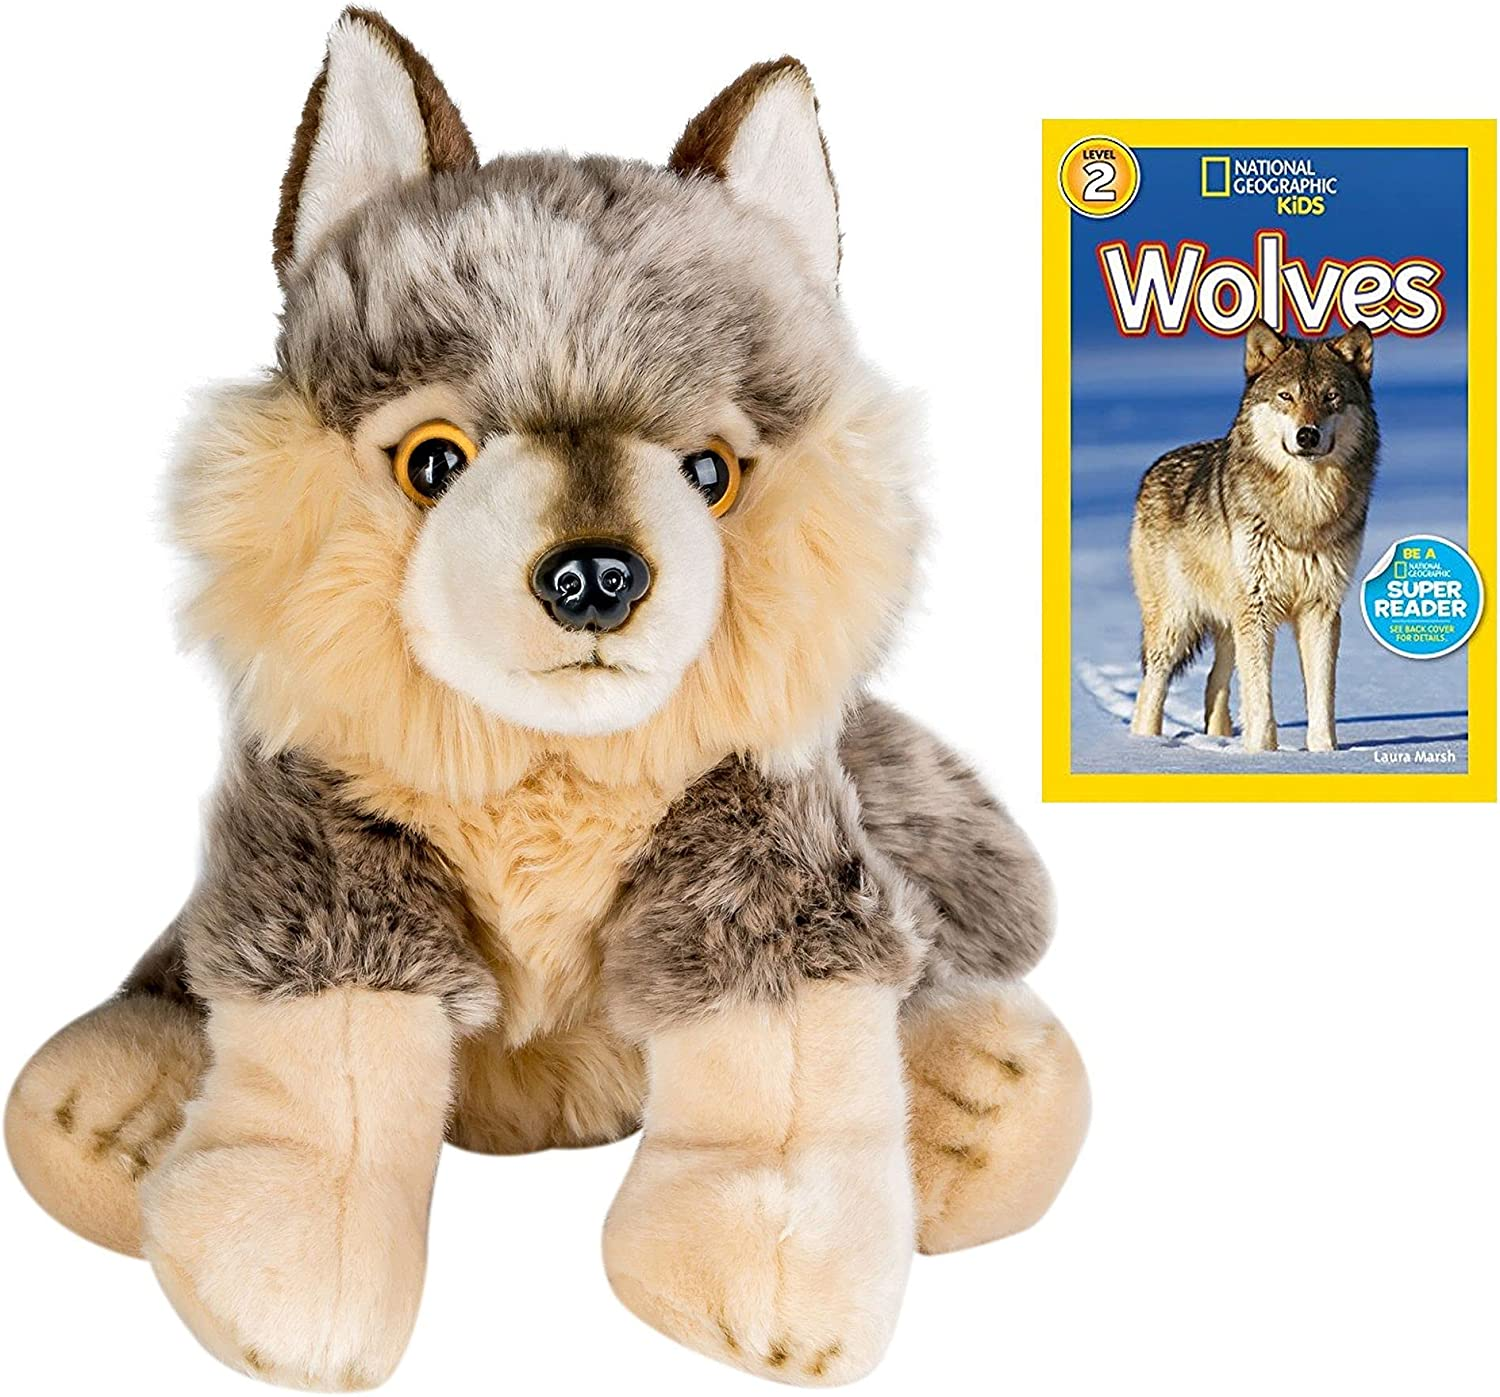 10 Inch Plush Wolf Stuffed Animal Don't miss Columbus Mall the campaign Geographic R Set with National